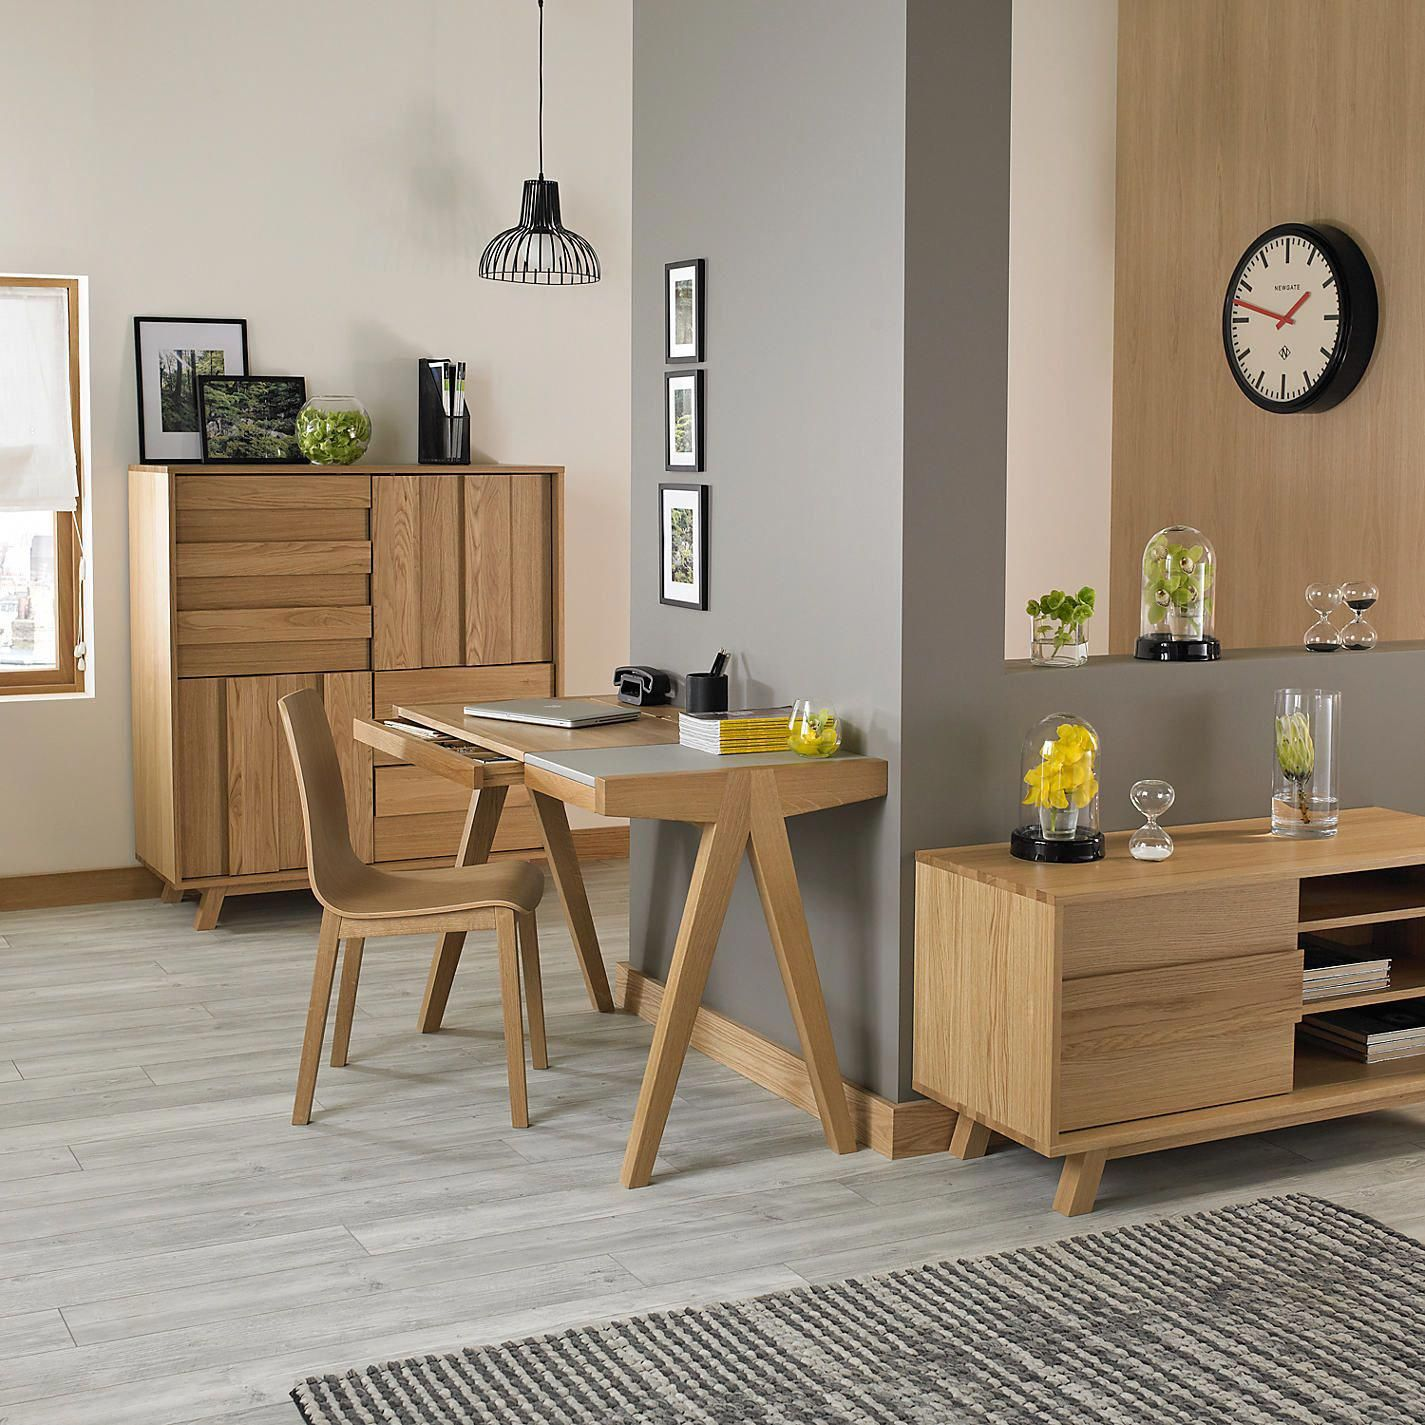 Grey Wood Flooring And Oak Furniture Google Search Woodflooringbedroom Grey Flooring Living Room Oak Dining Room Table Living Room Wood Floor